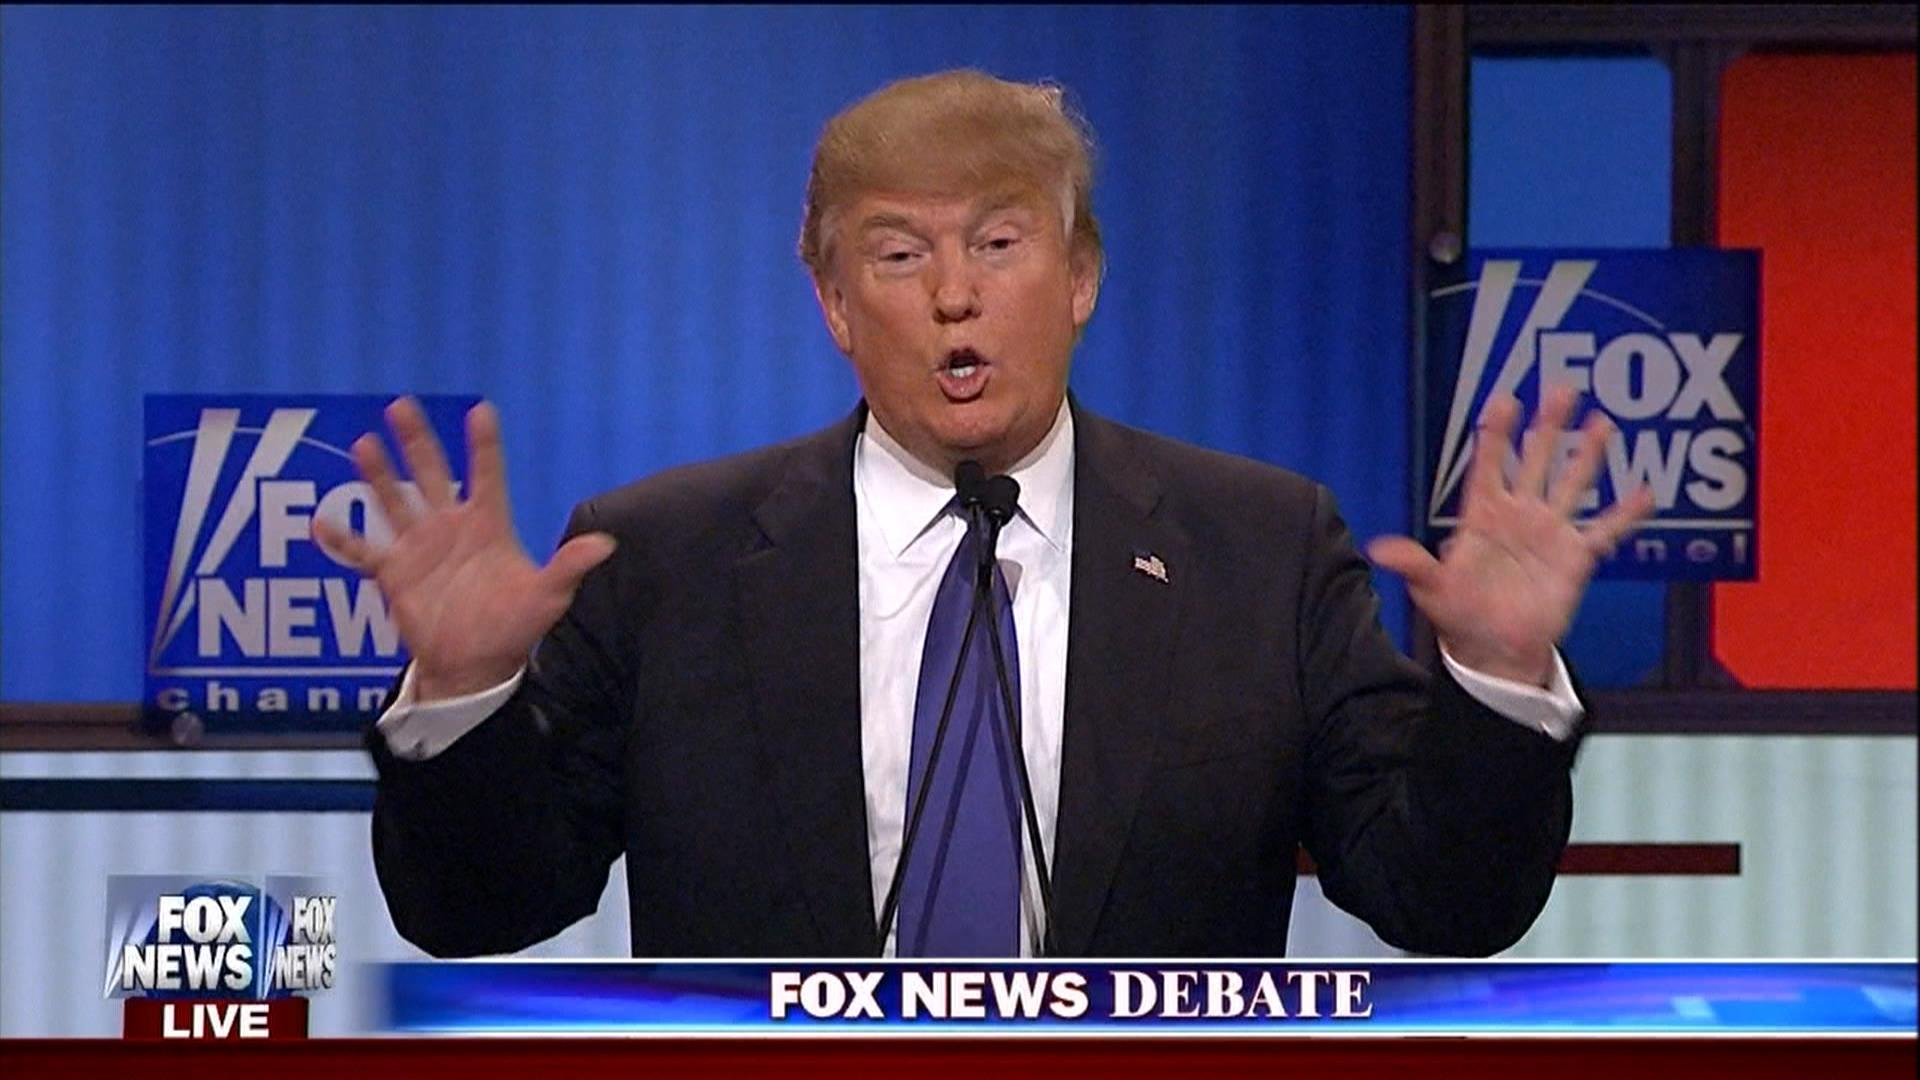 Trump: do these look like small hands?